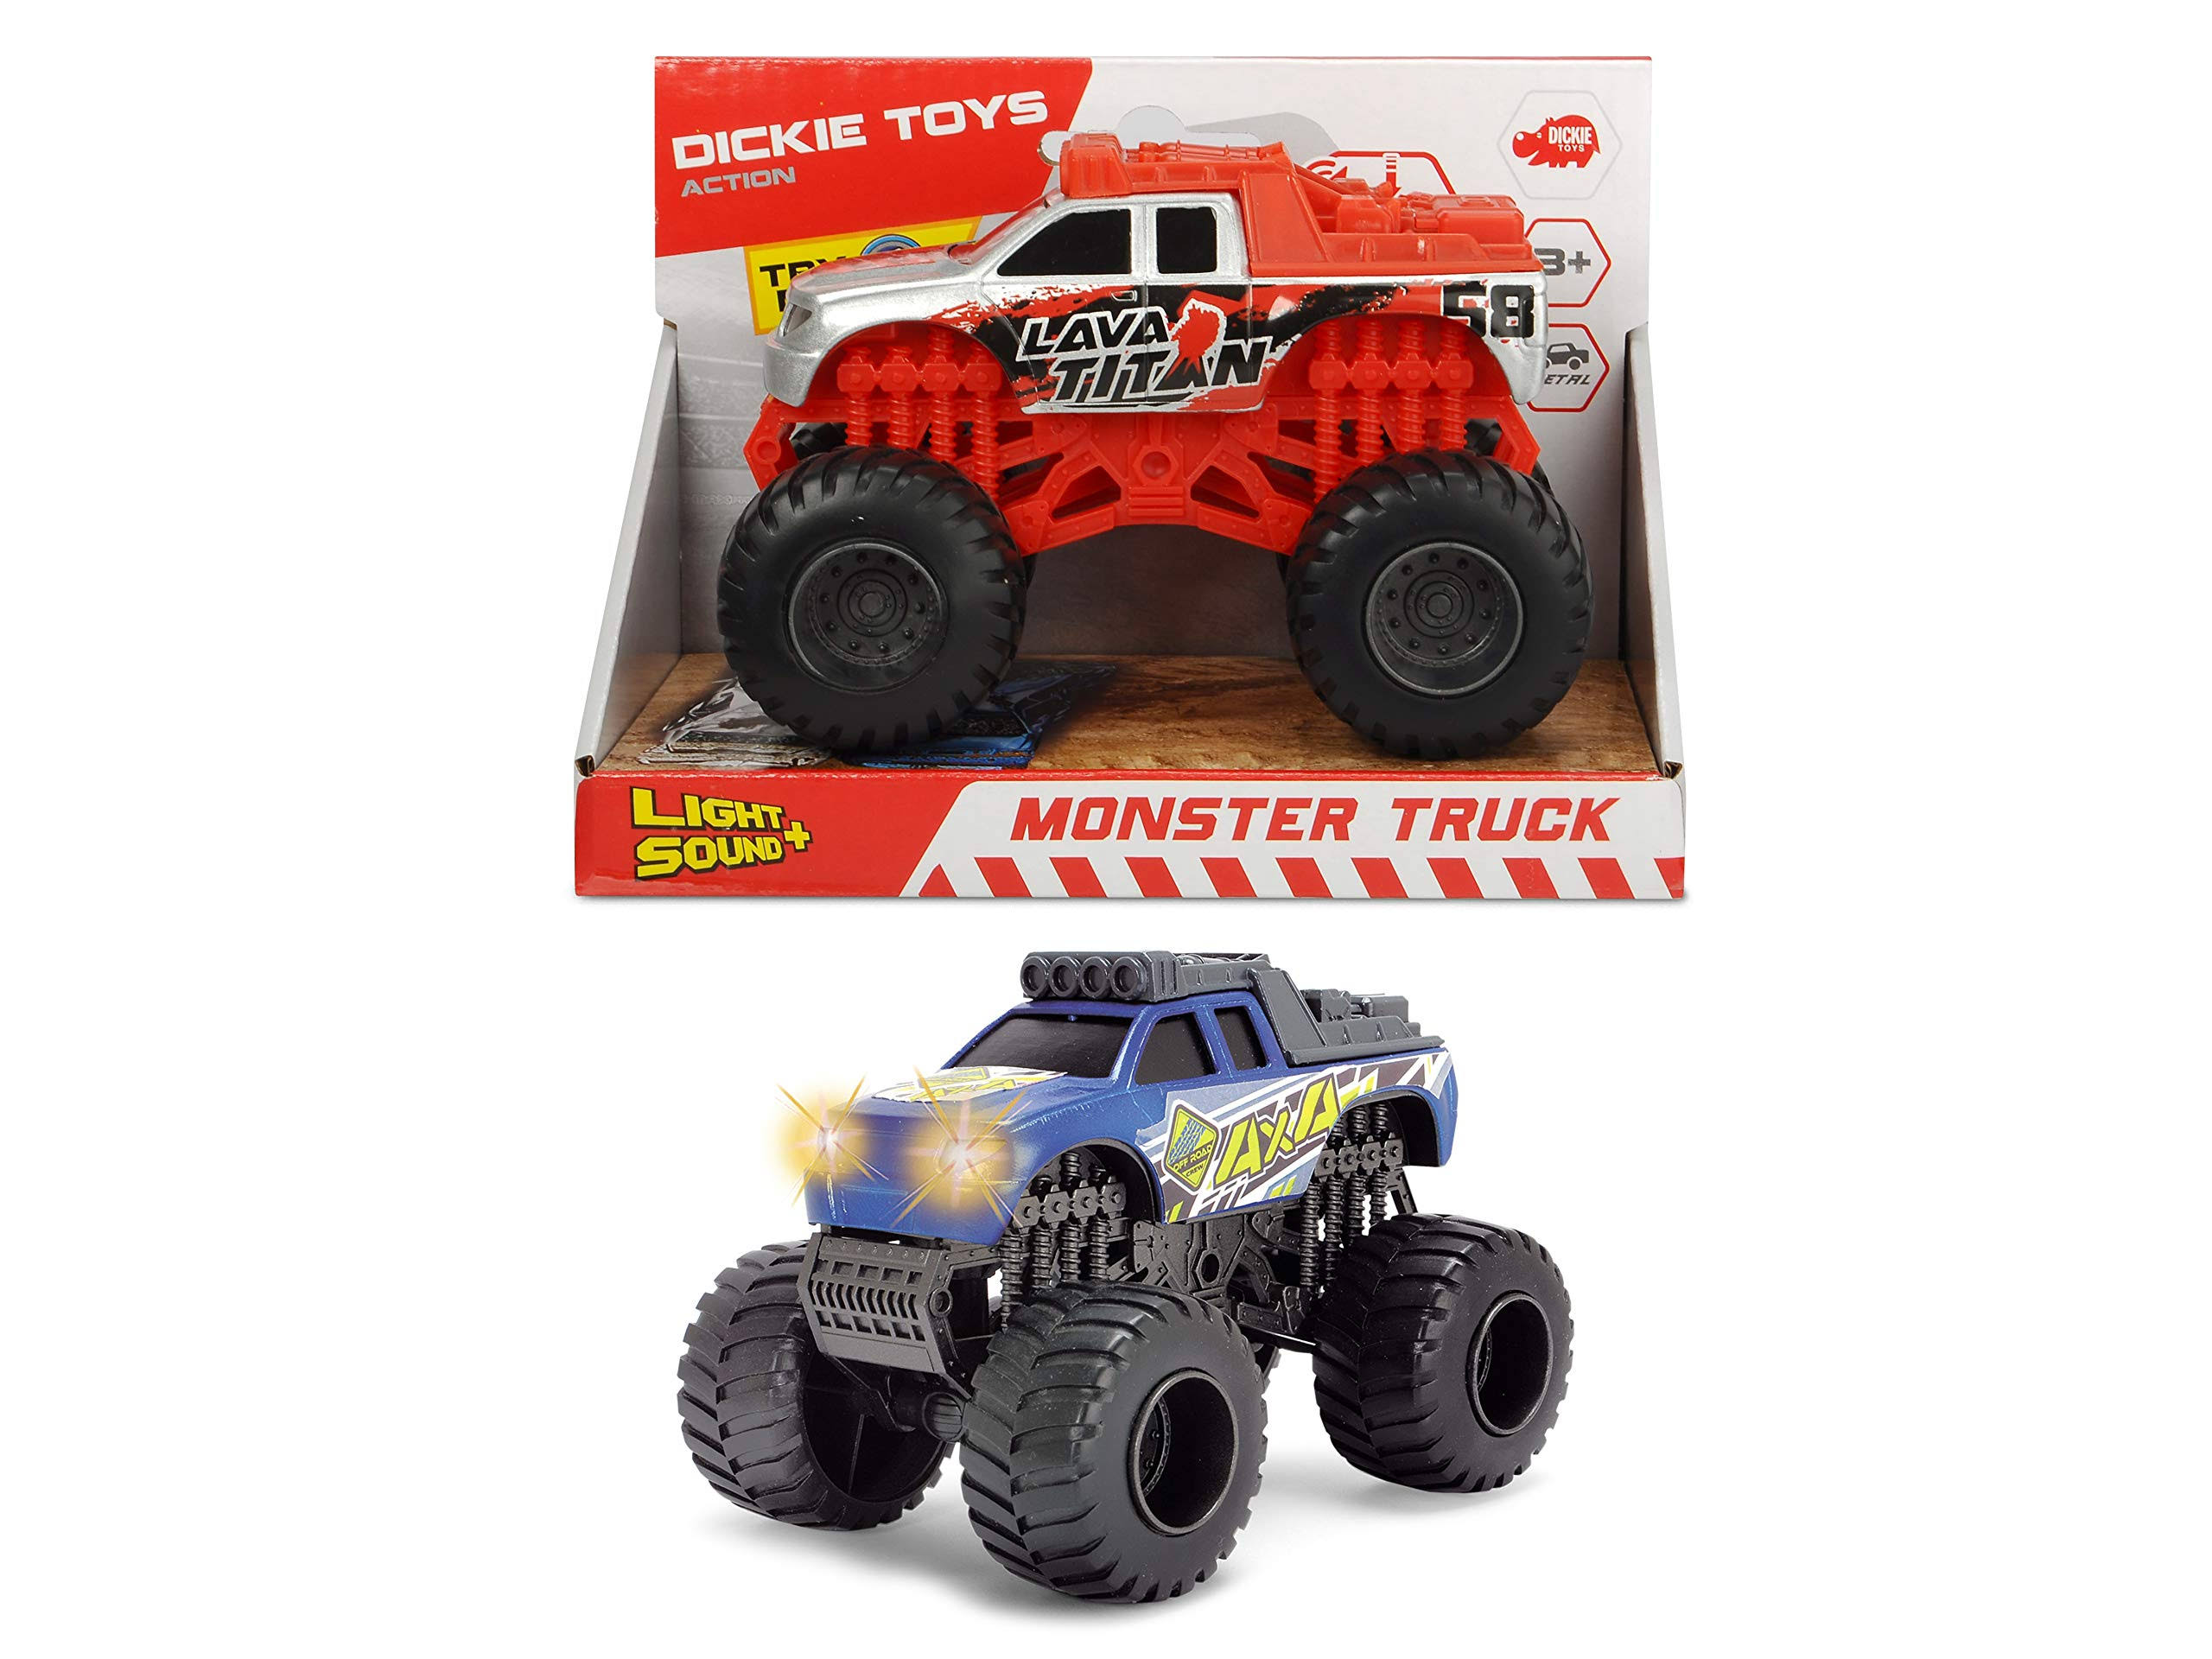 Dickie Toys Monster Truck - Assorted Colors, 2pcs